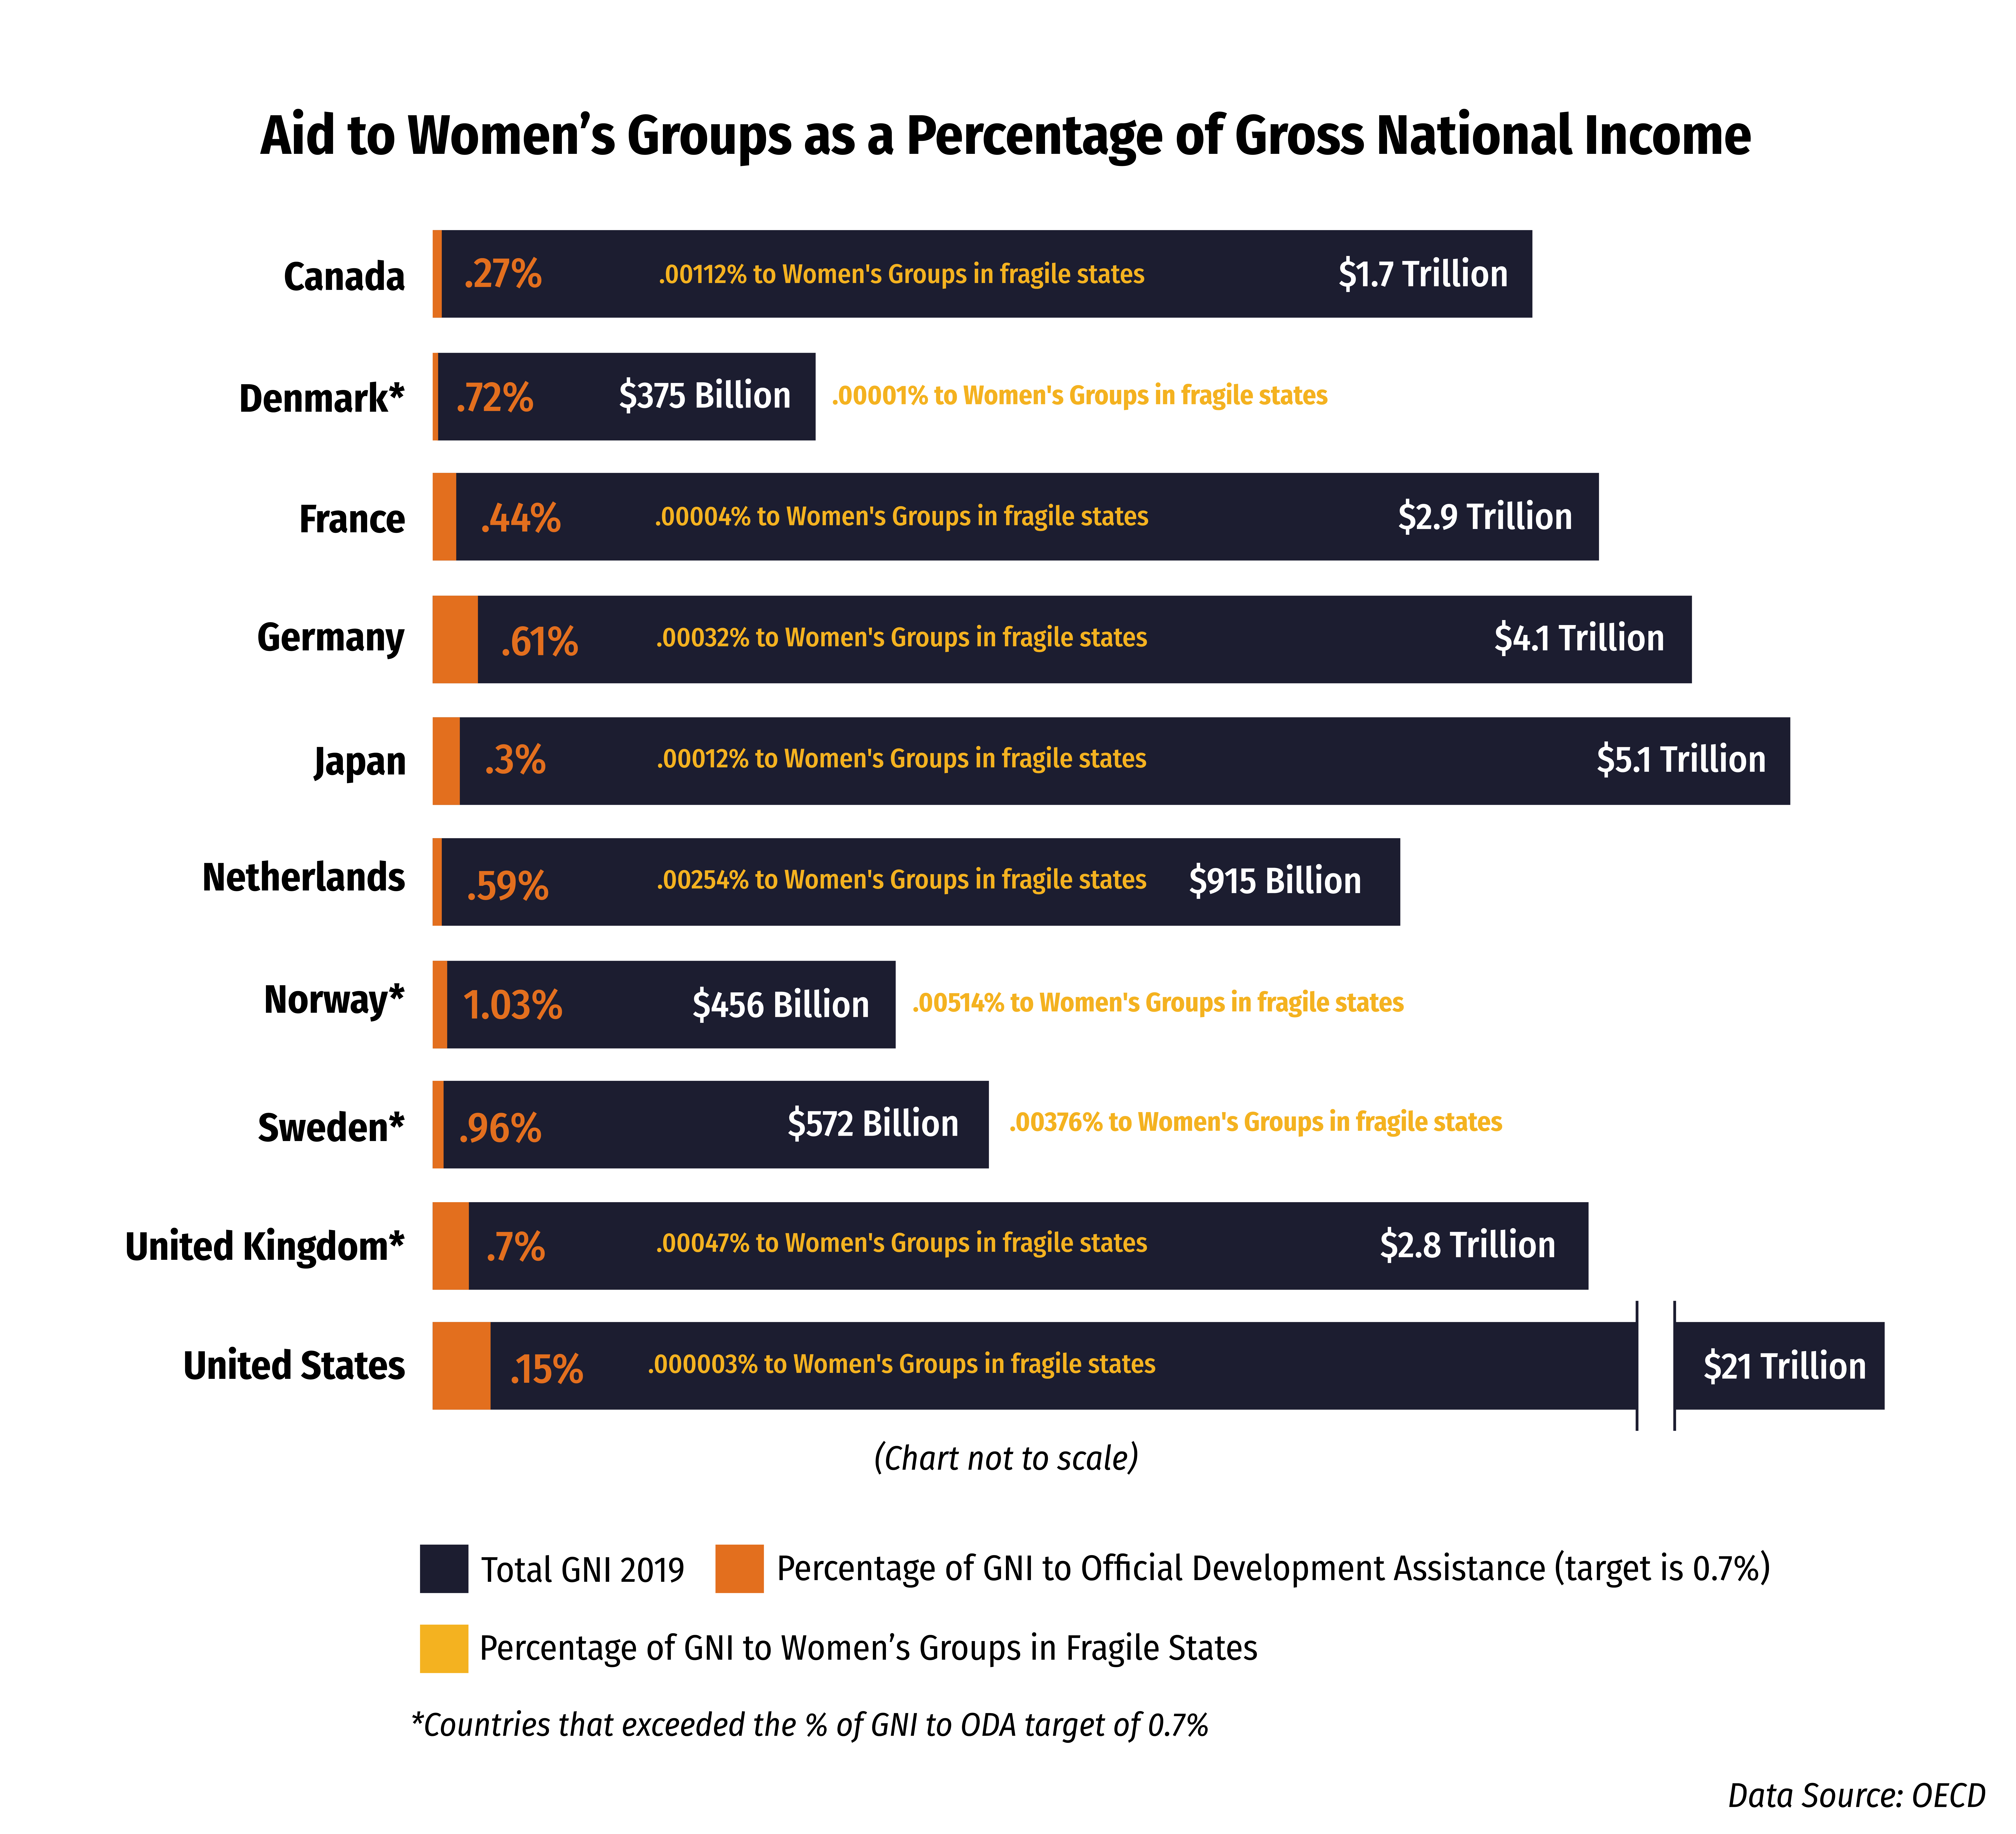 An infographic showing aid to women's groups as a percentage of gross national income.